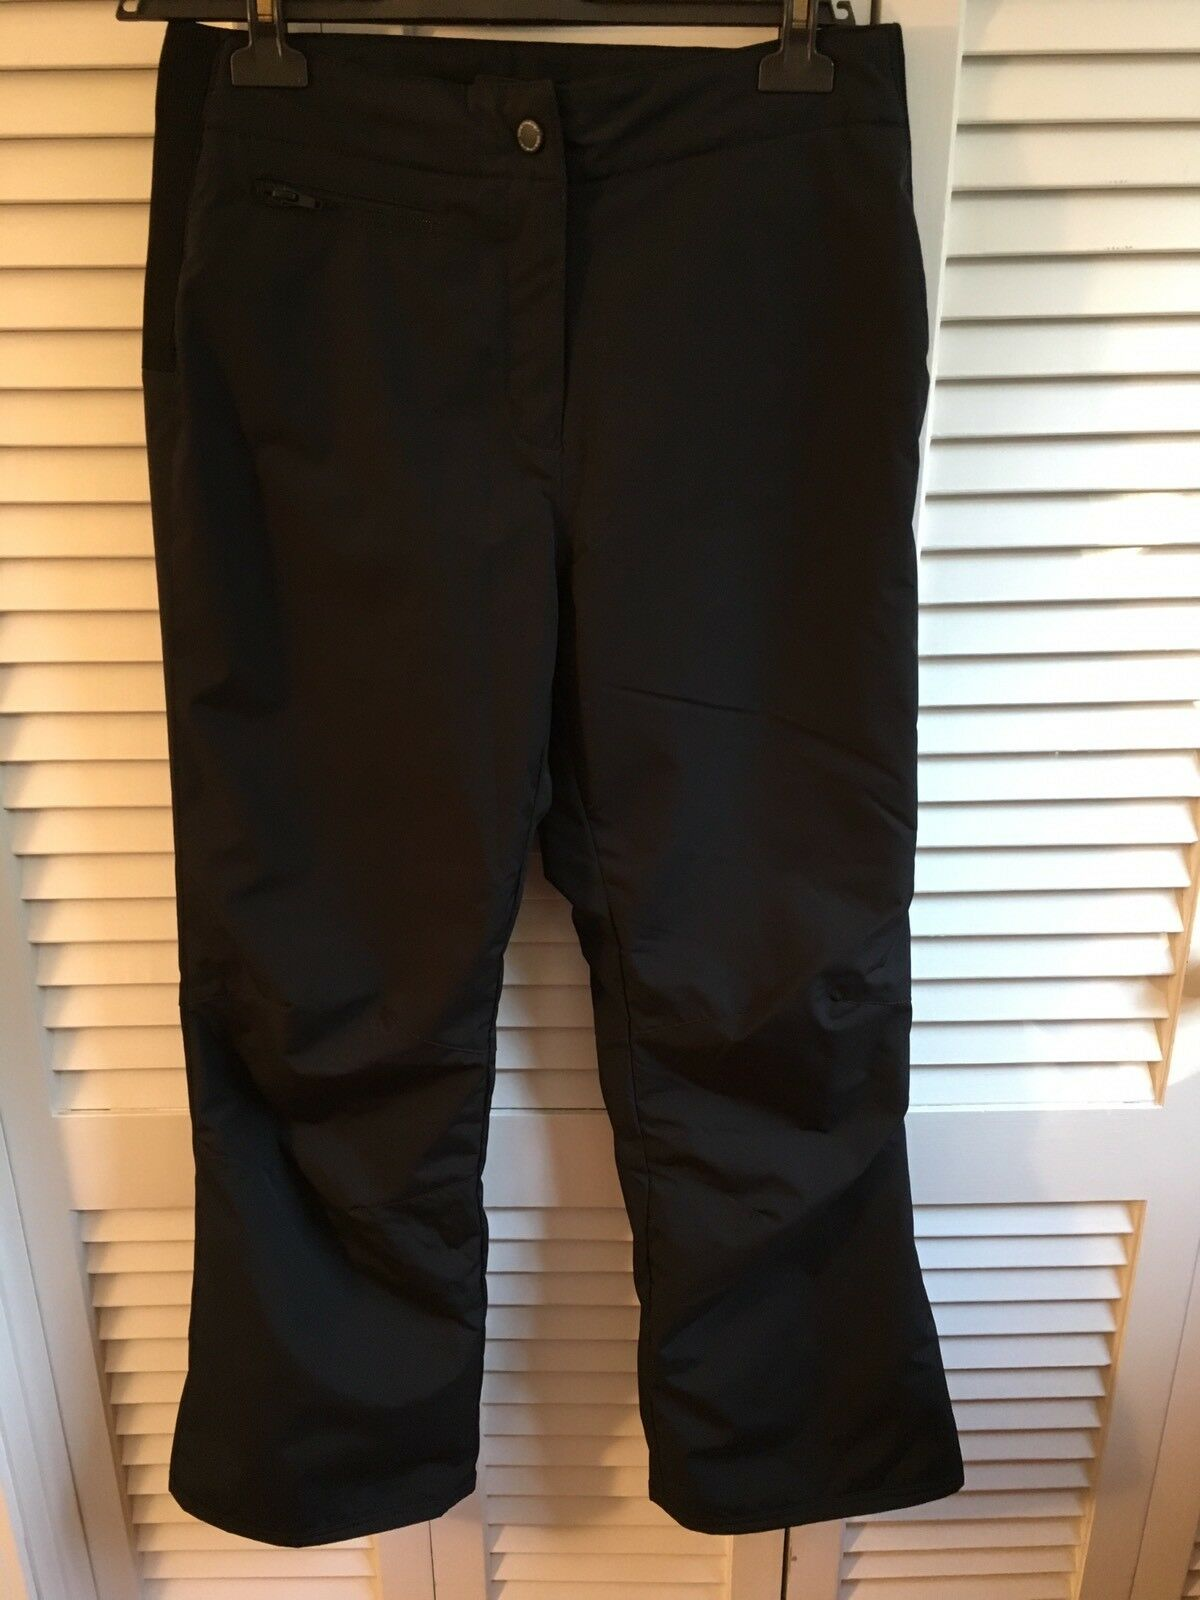 Obeymeyer Ski Pant, Size 6 With Elastic Sides   various sizes